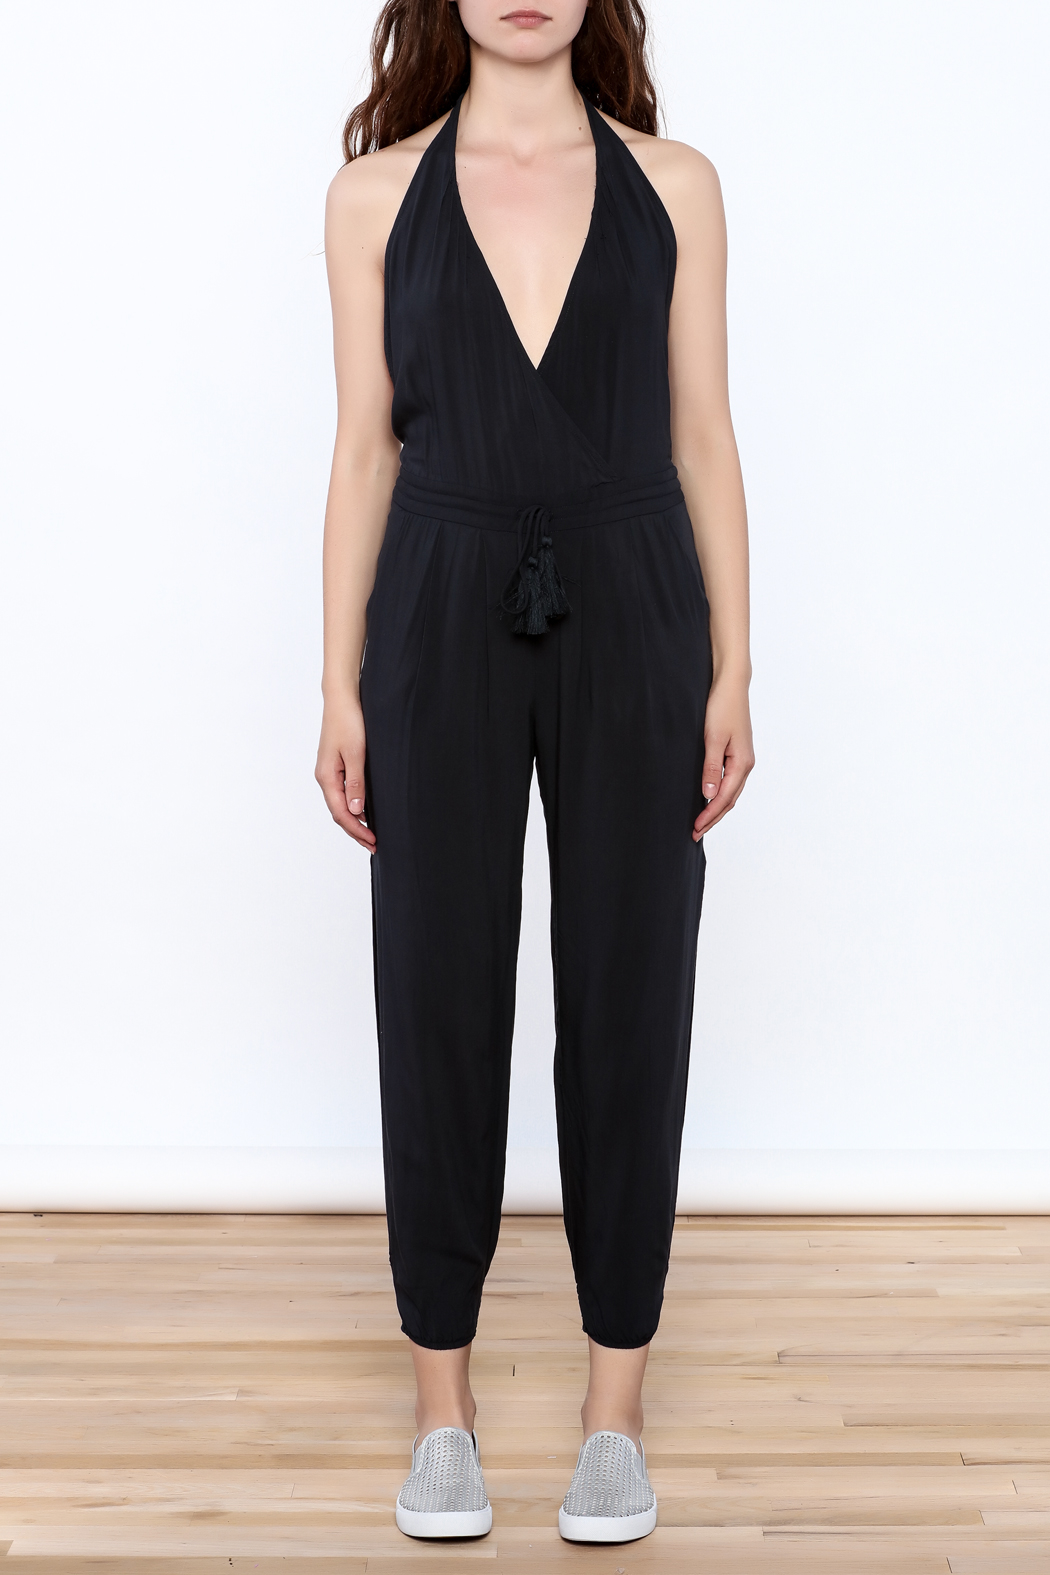 Mustard Seed Charcoal Sleeveless Jumpsuit - Front Cropped Image